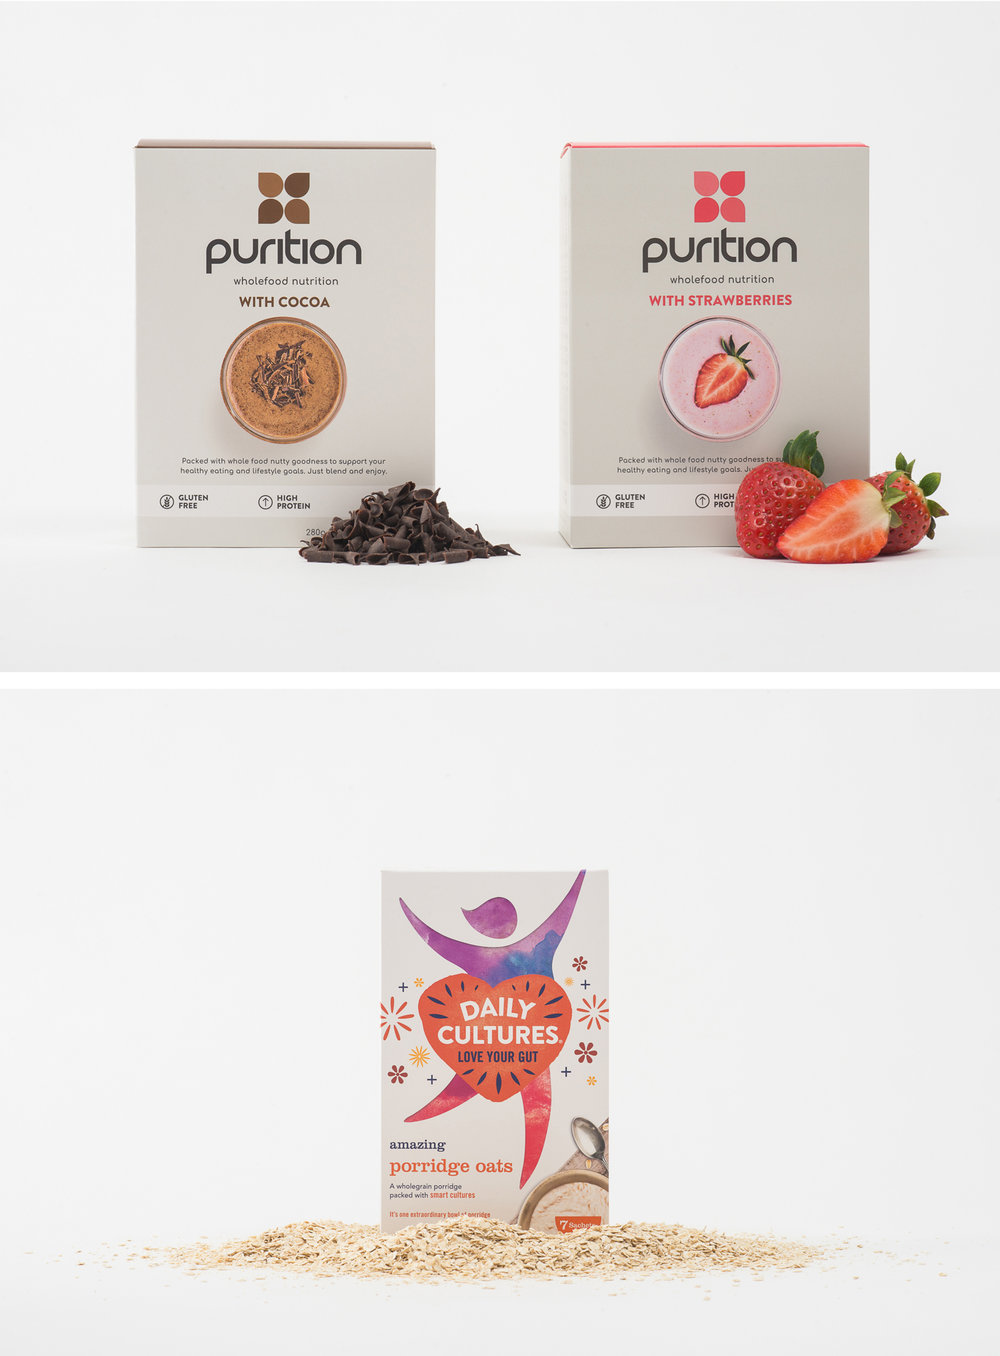 cereal-product-photography.jpg